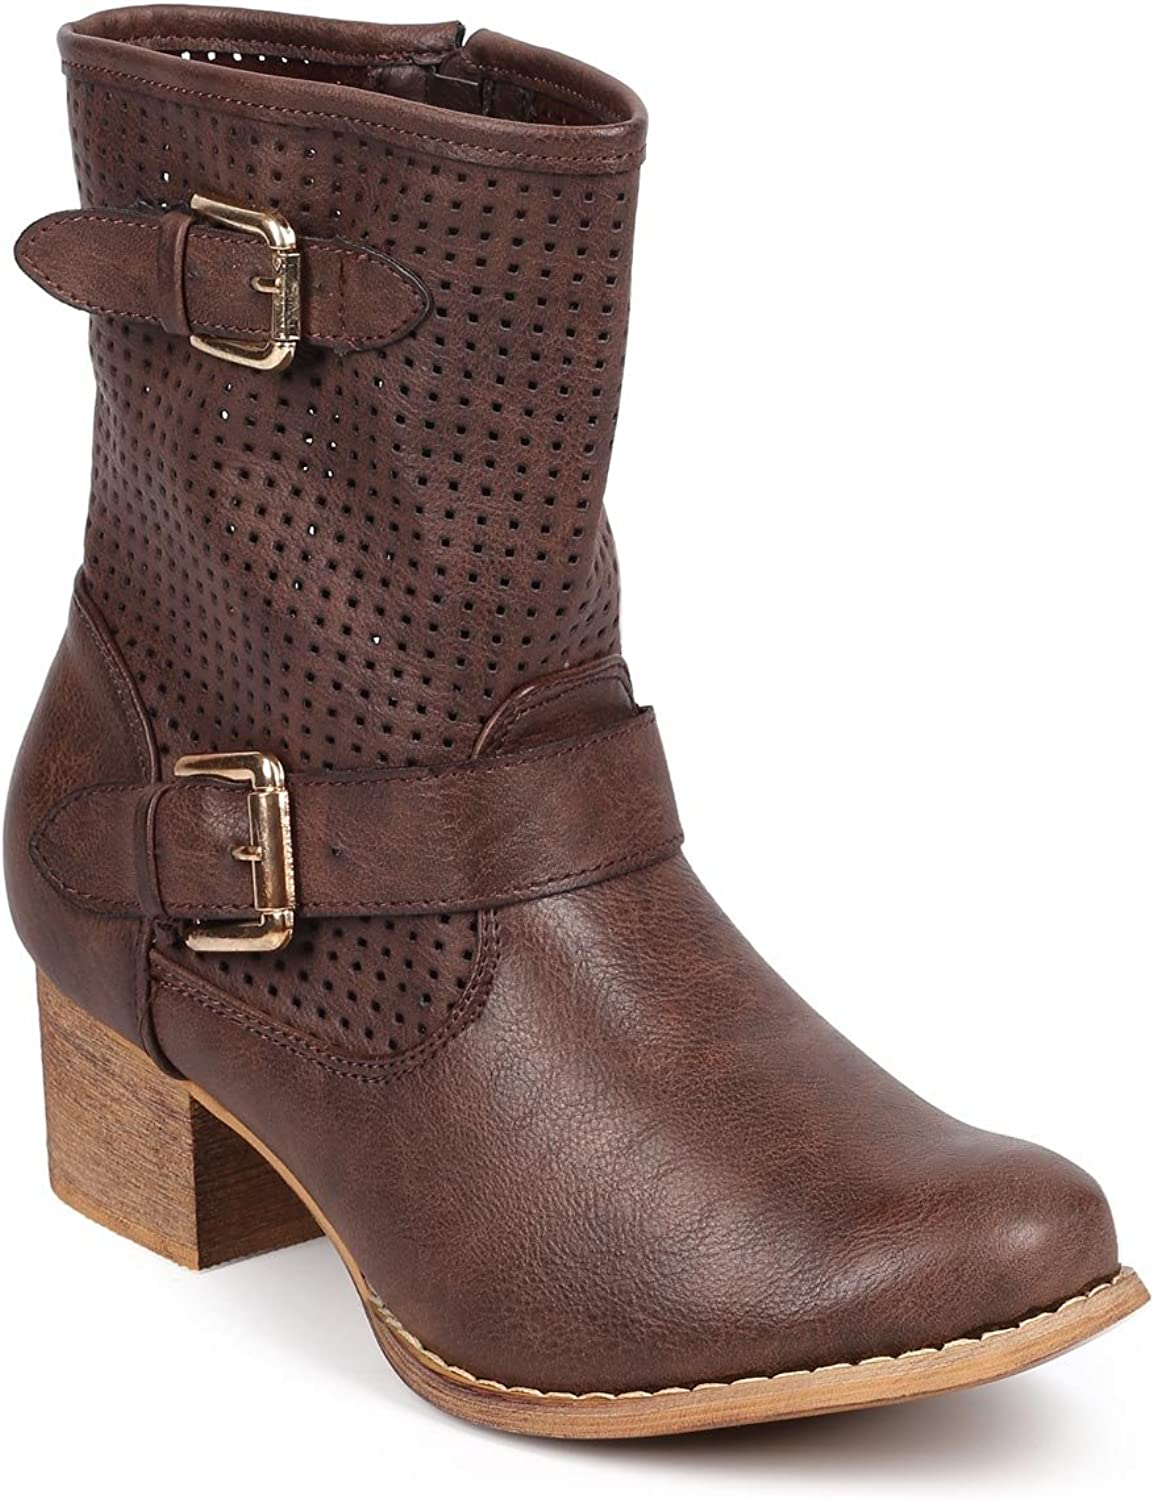 Liliana Women Leatherette Perforated Round Toe Buckle Strap Riding Boot DB59 - Brown